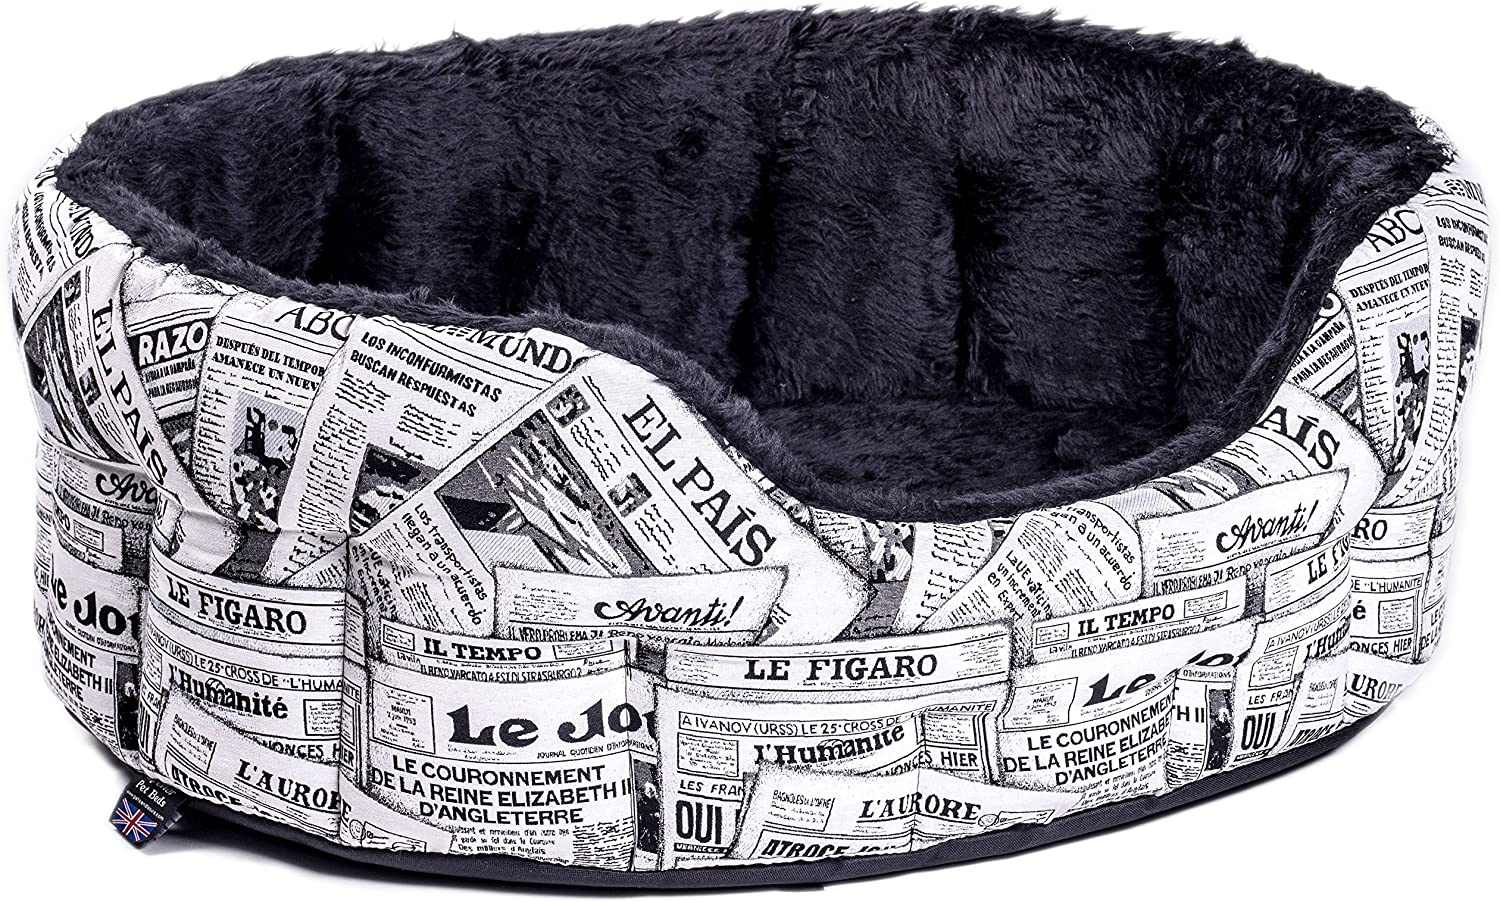 P&L Superior Pet Beds Fur Lined Oval Drop Fronted Heavy Duty News Design Softee Bed, Intermediate, 61 x 51 x 22 cm, Black White(size 4)